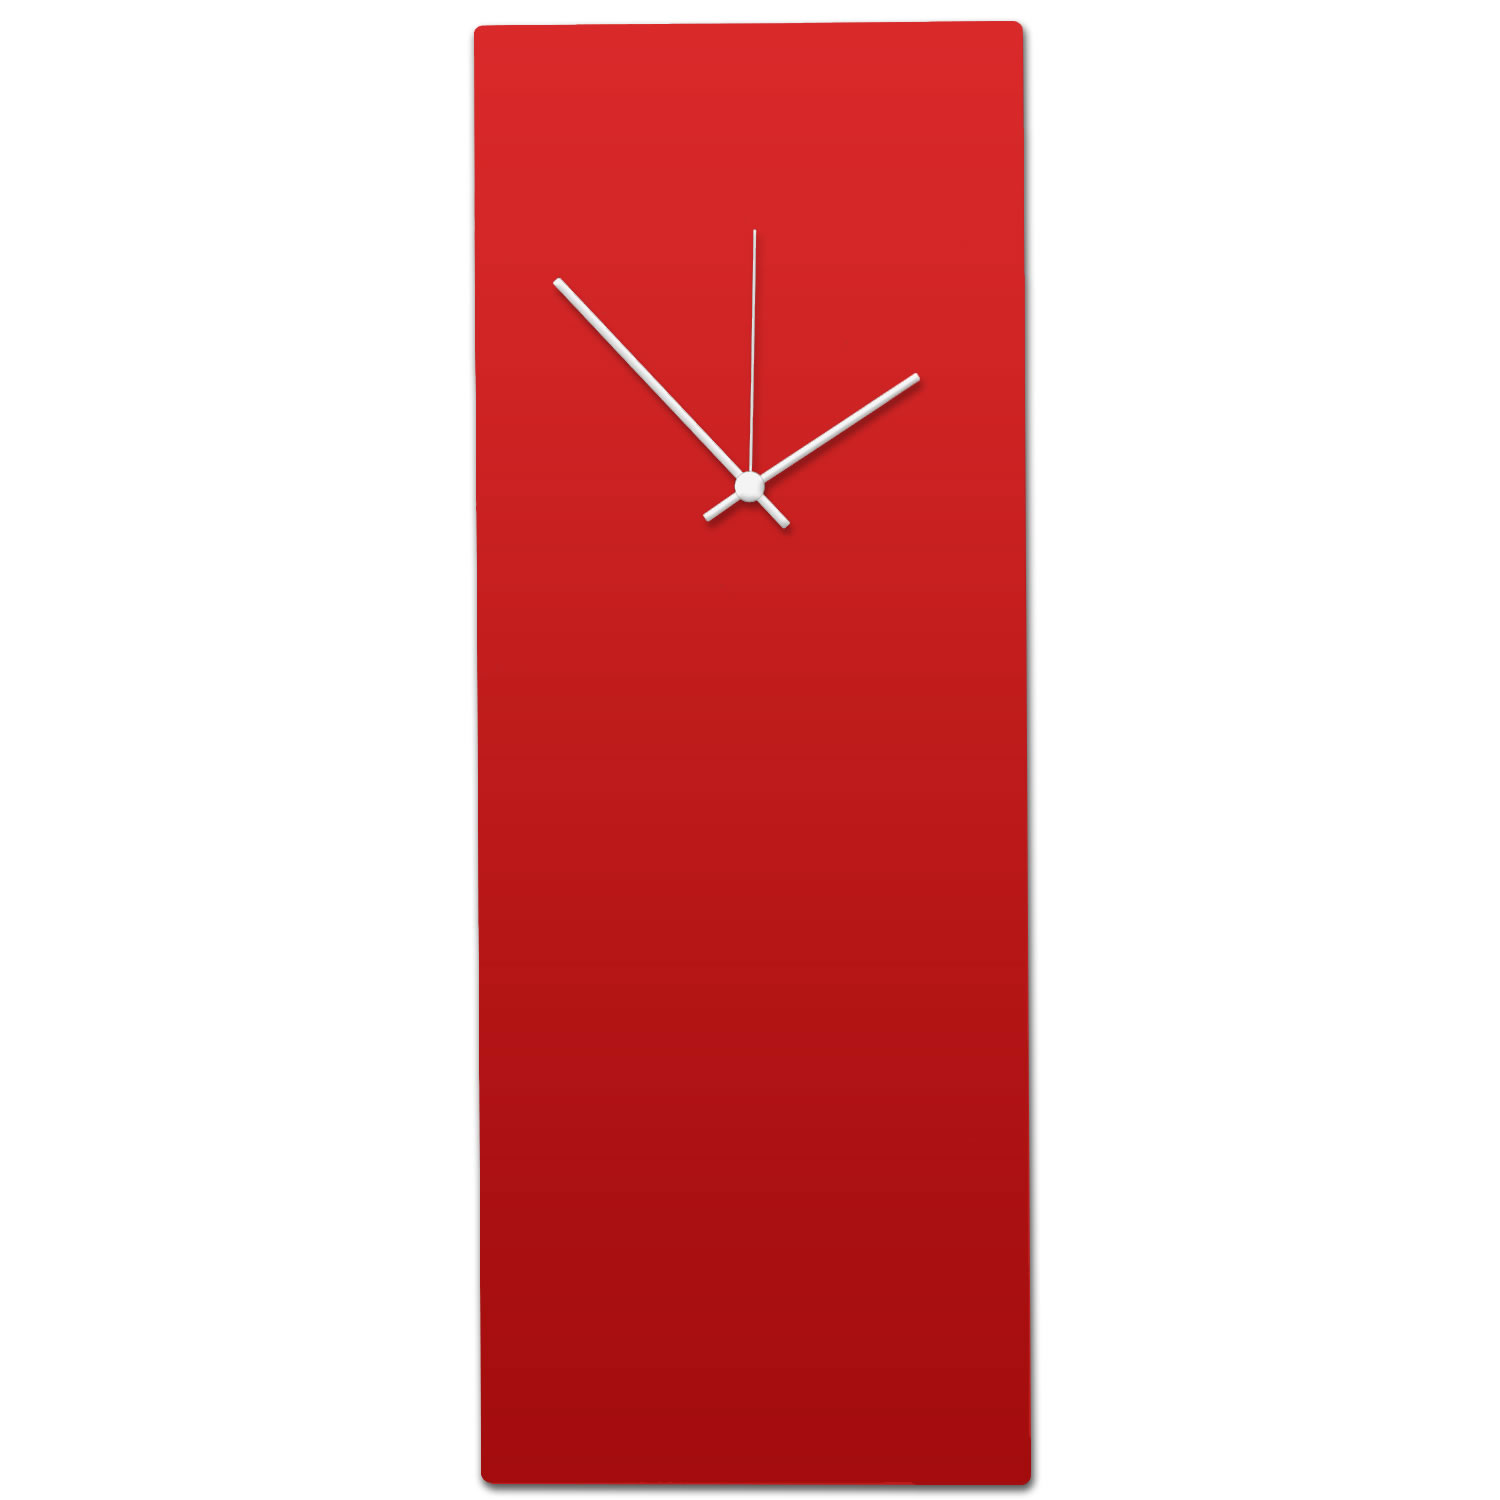 Redout White Clock - Large - Minimalist Red Wall Clock